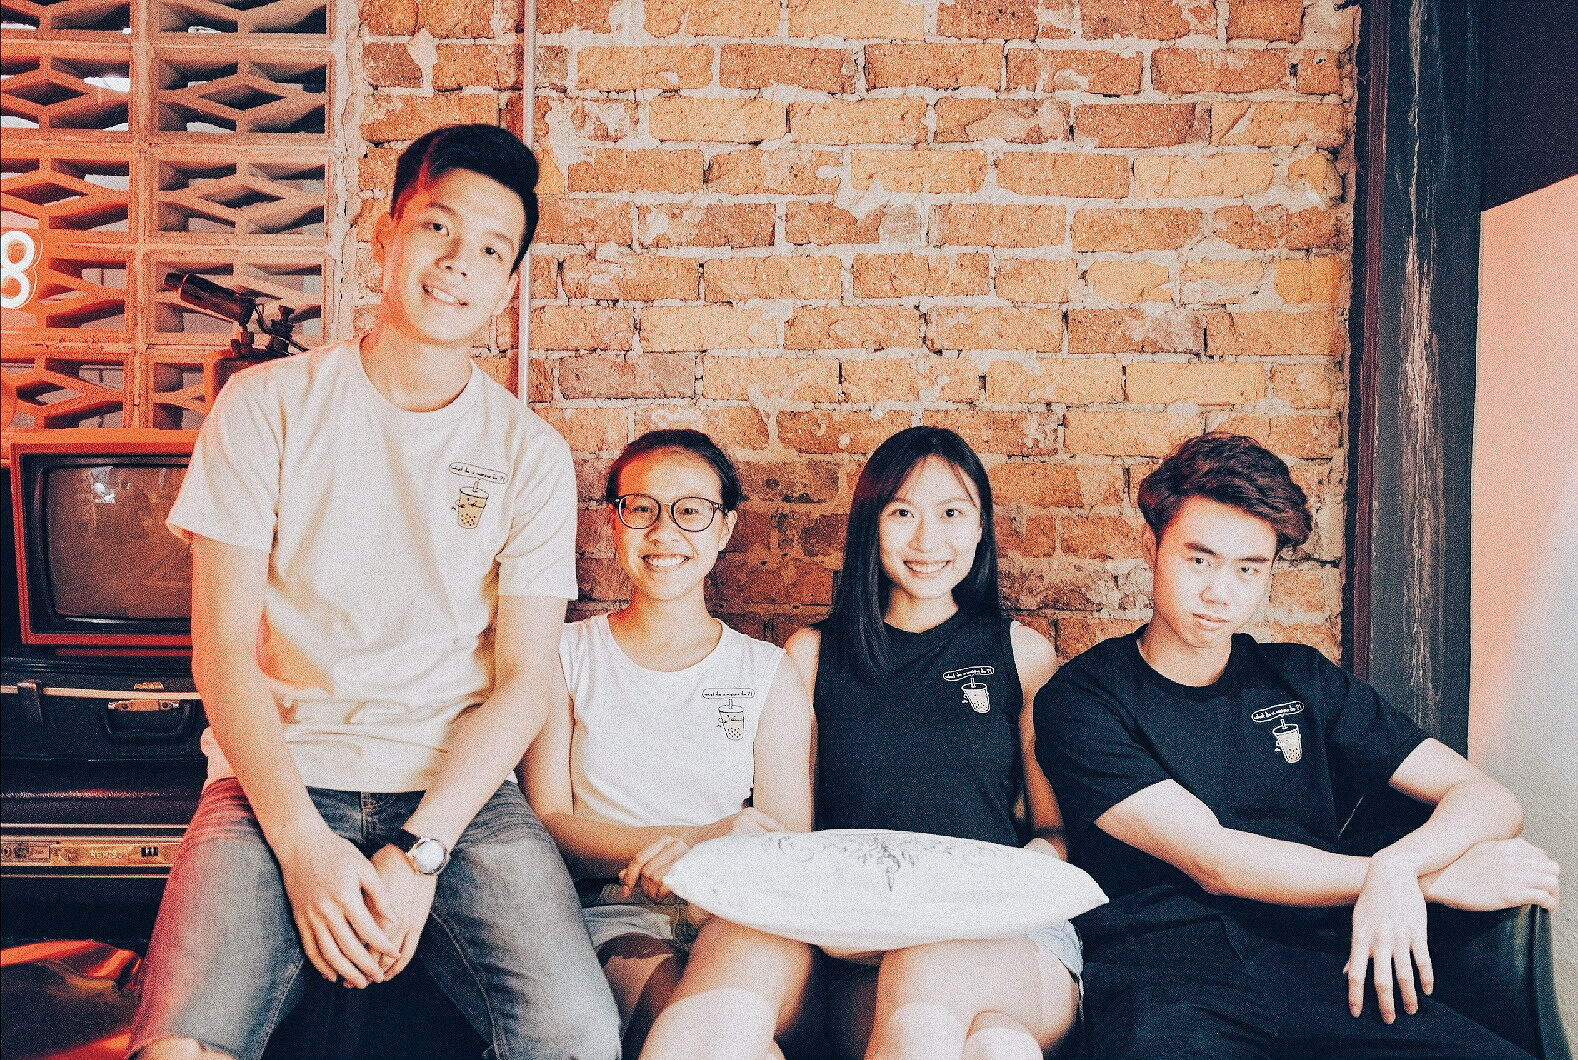 Timesupco   The Generation Z from Different Field - About Us